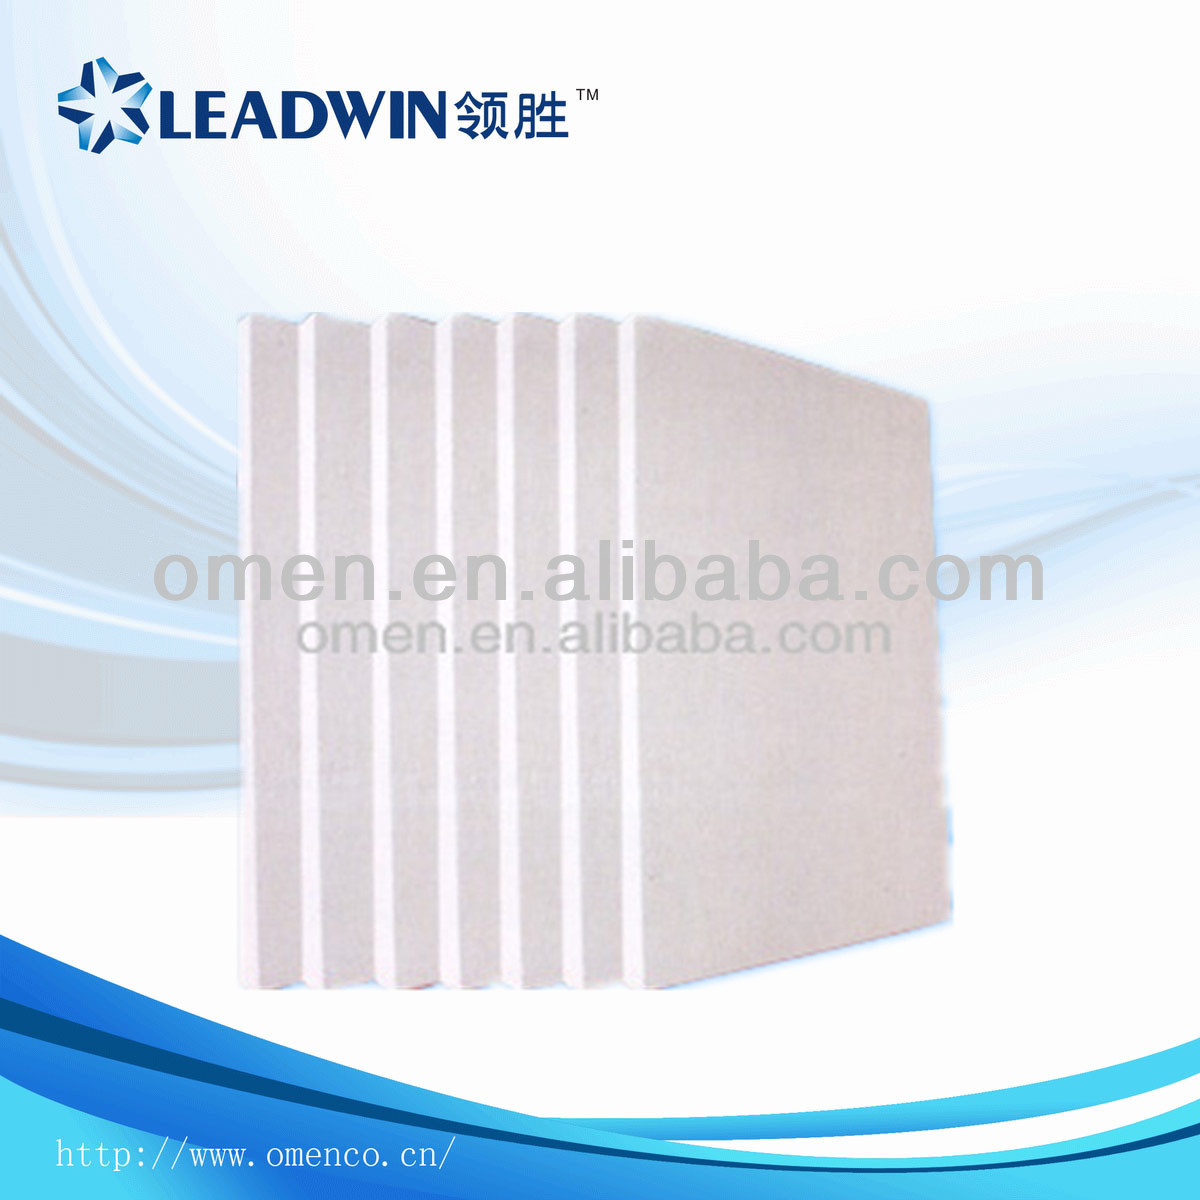 LeadWin ceramic fiber blanket price